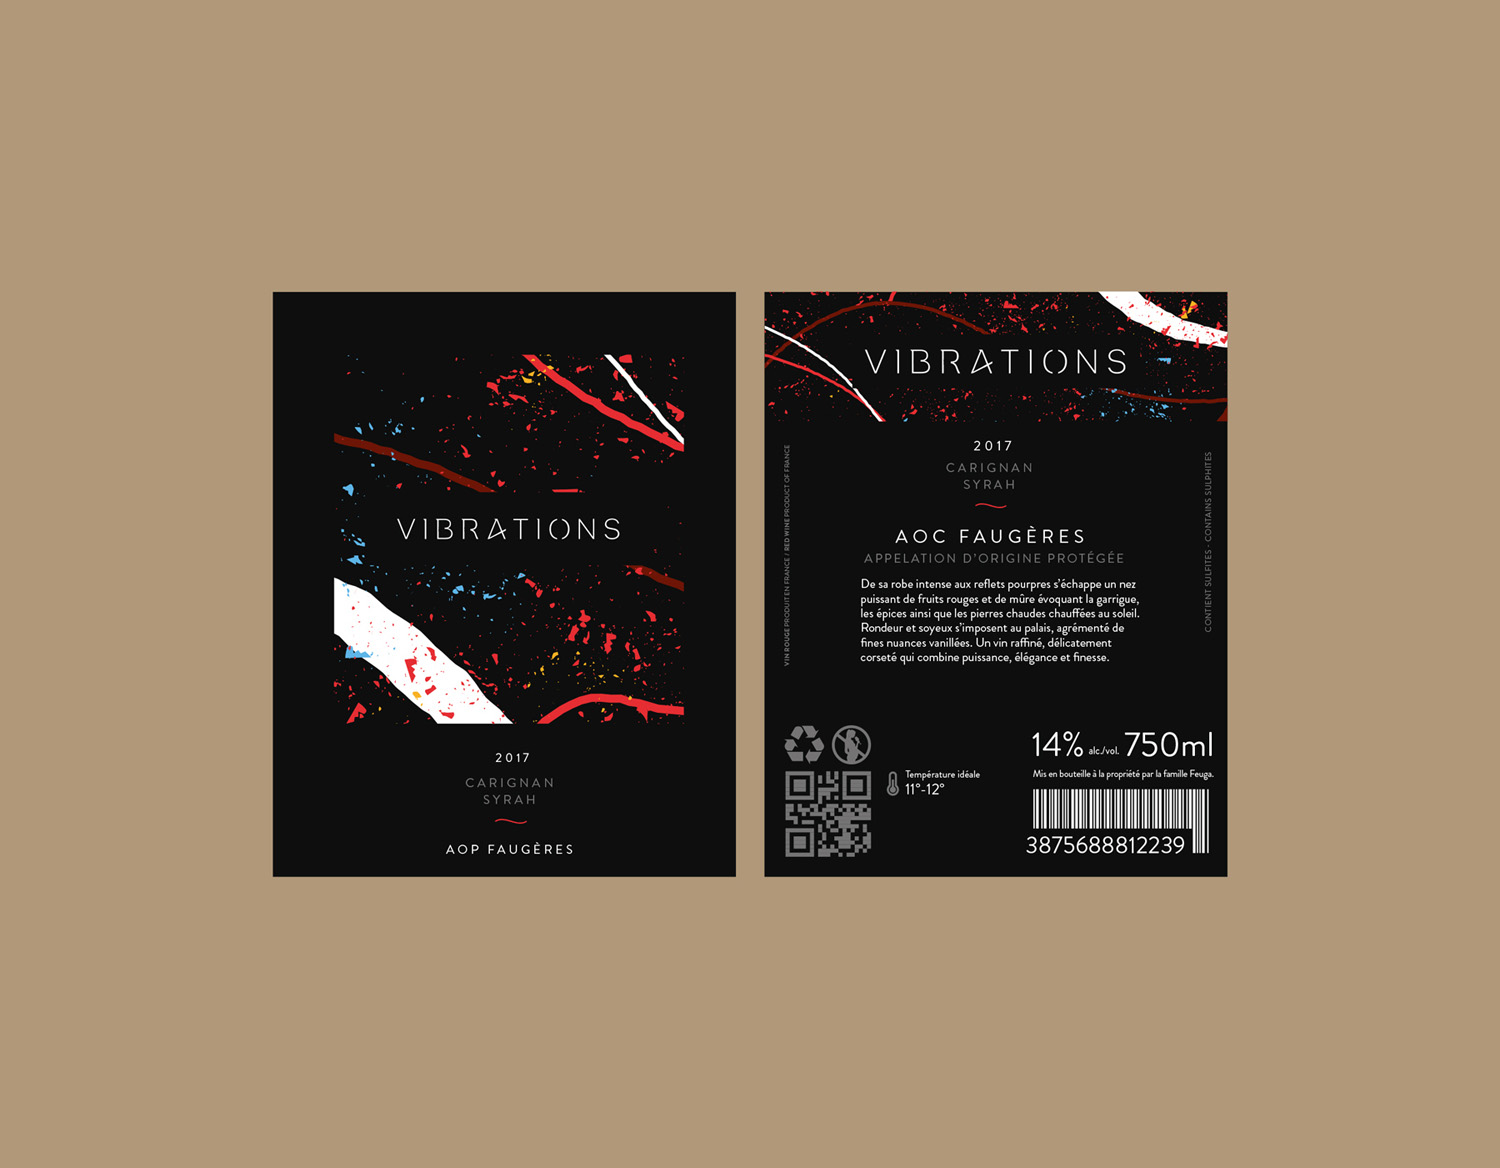 vibrations wine label design branding bottle and card mockup design etiquette de vin